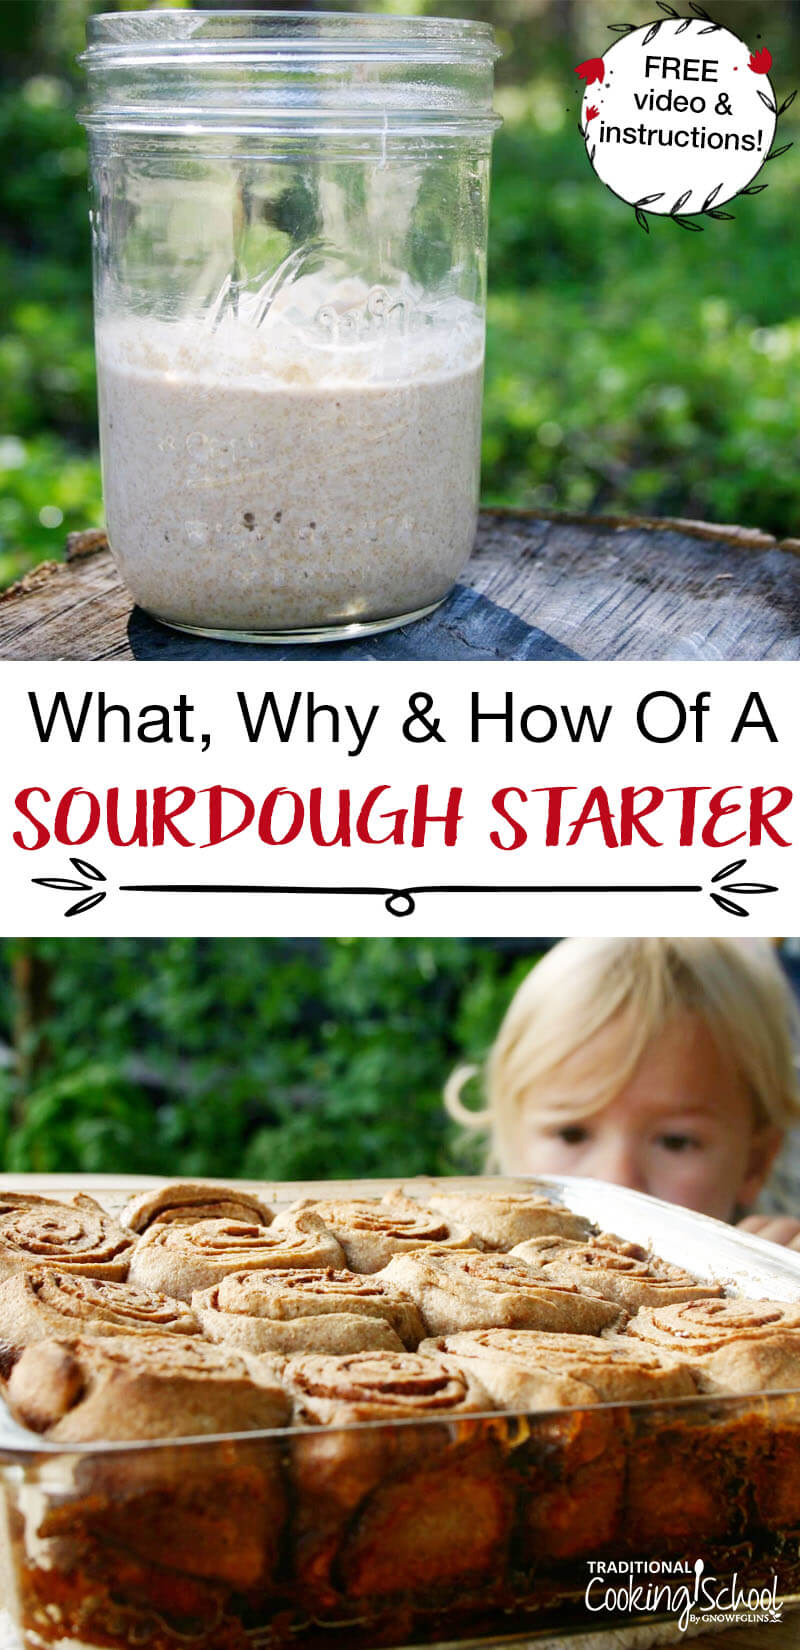 "Want to make a sourdough starter? Learn the ""What Why & How Of A Sourdough Starter"" (plus a free video + best instructions!). With our easy recipe for how to make a sourdough starter we're confident you'll have first time success. Starter is amazing for so many uses from bread, pancakes, muffins and more. Whether you make a whole wheat, rye or gluten free sourdough starter is up to you. Our tips will be helpful no matter which kind you make. #sourdough #starter #recipe #easy #feeding #tradcookschool"